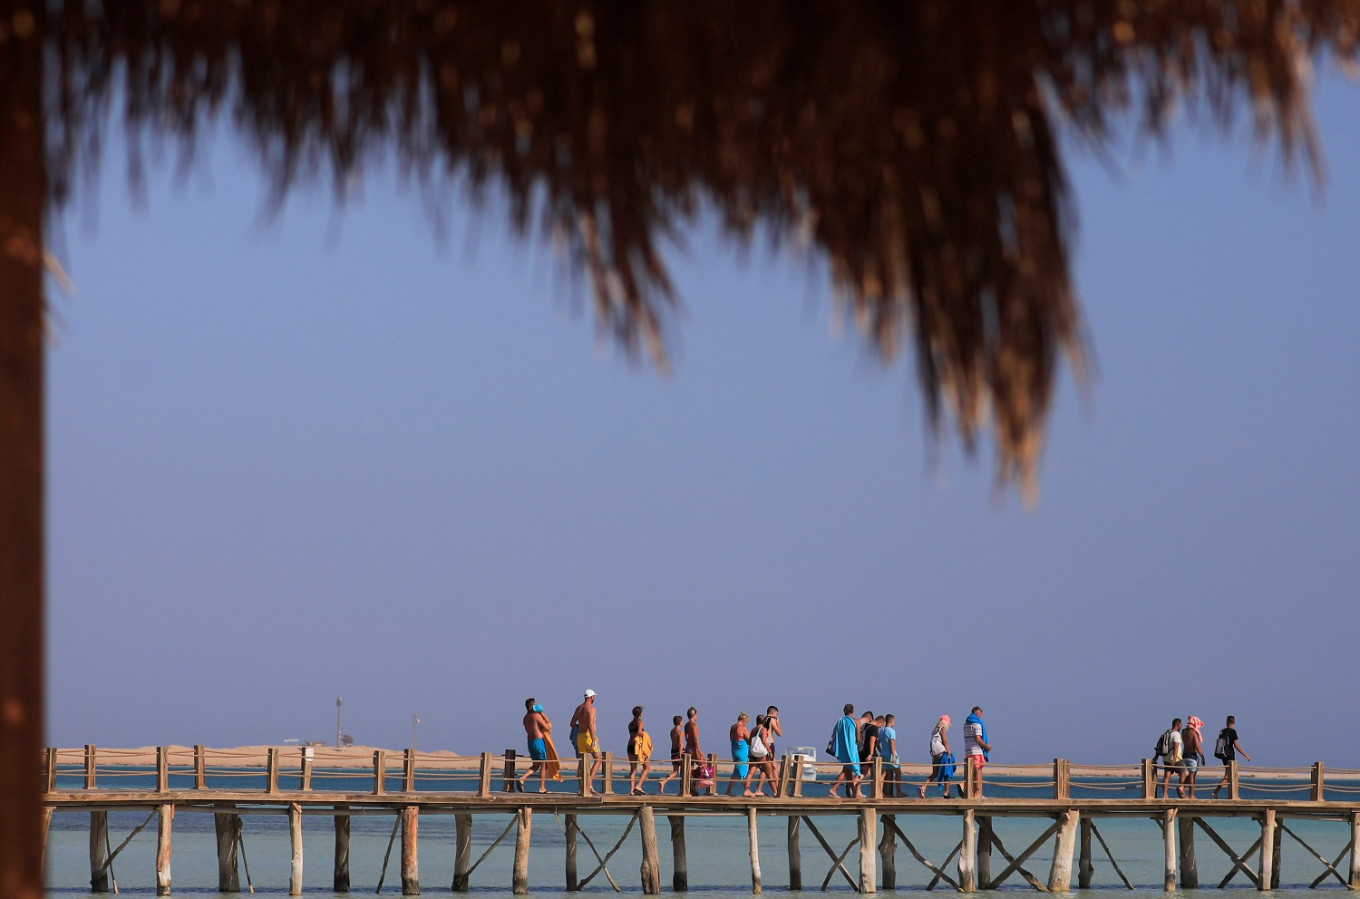 With tourists slow to return, Egypt's resorts and ancient sites face tough winter